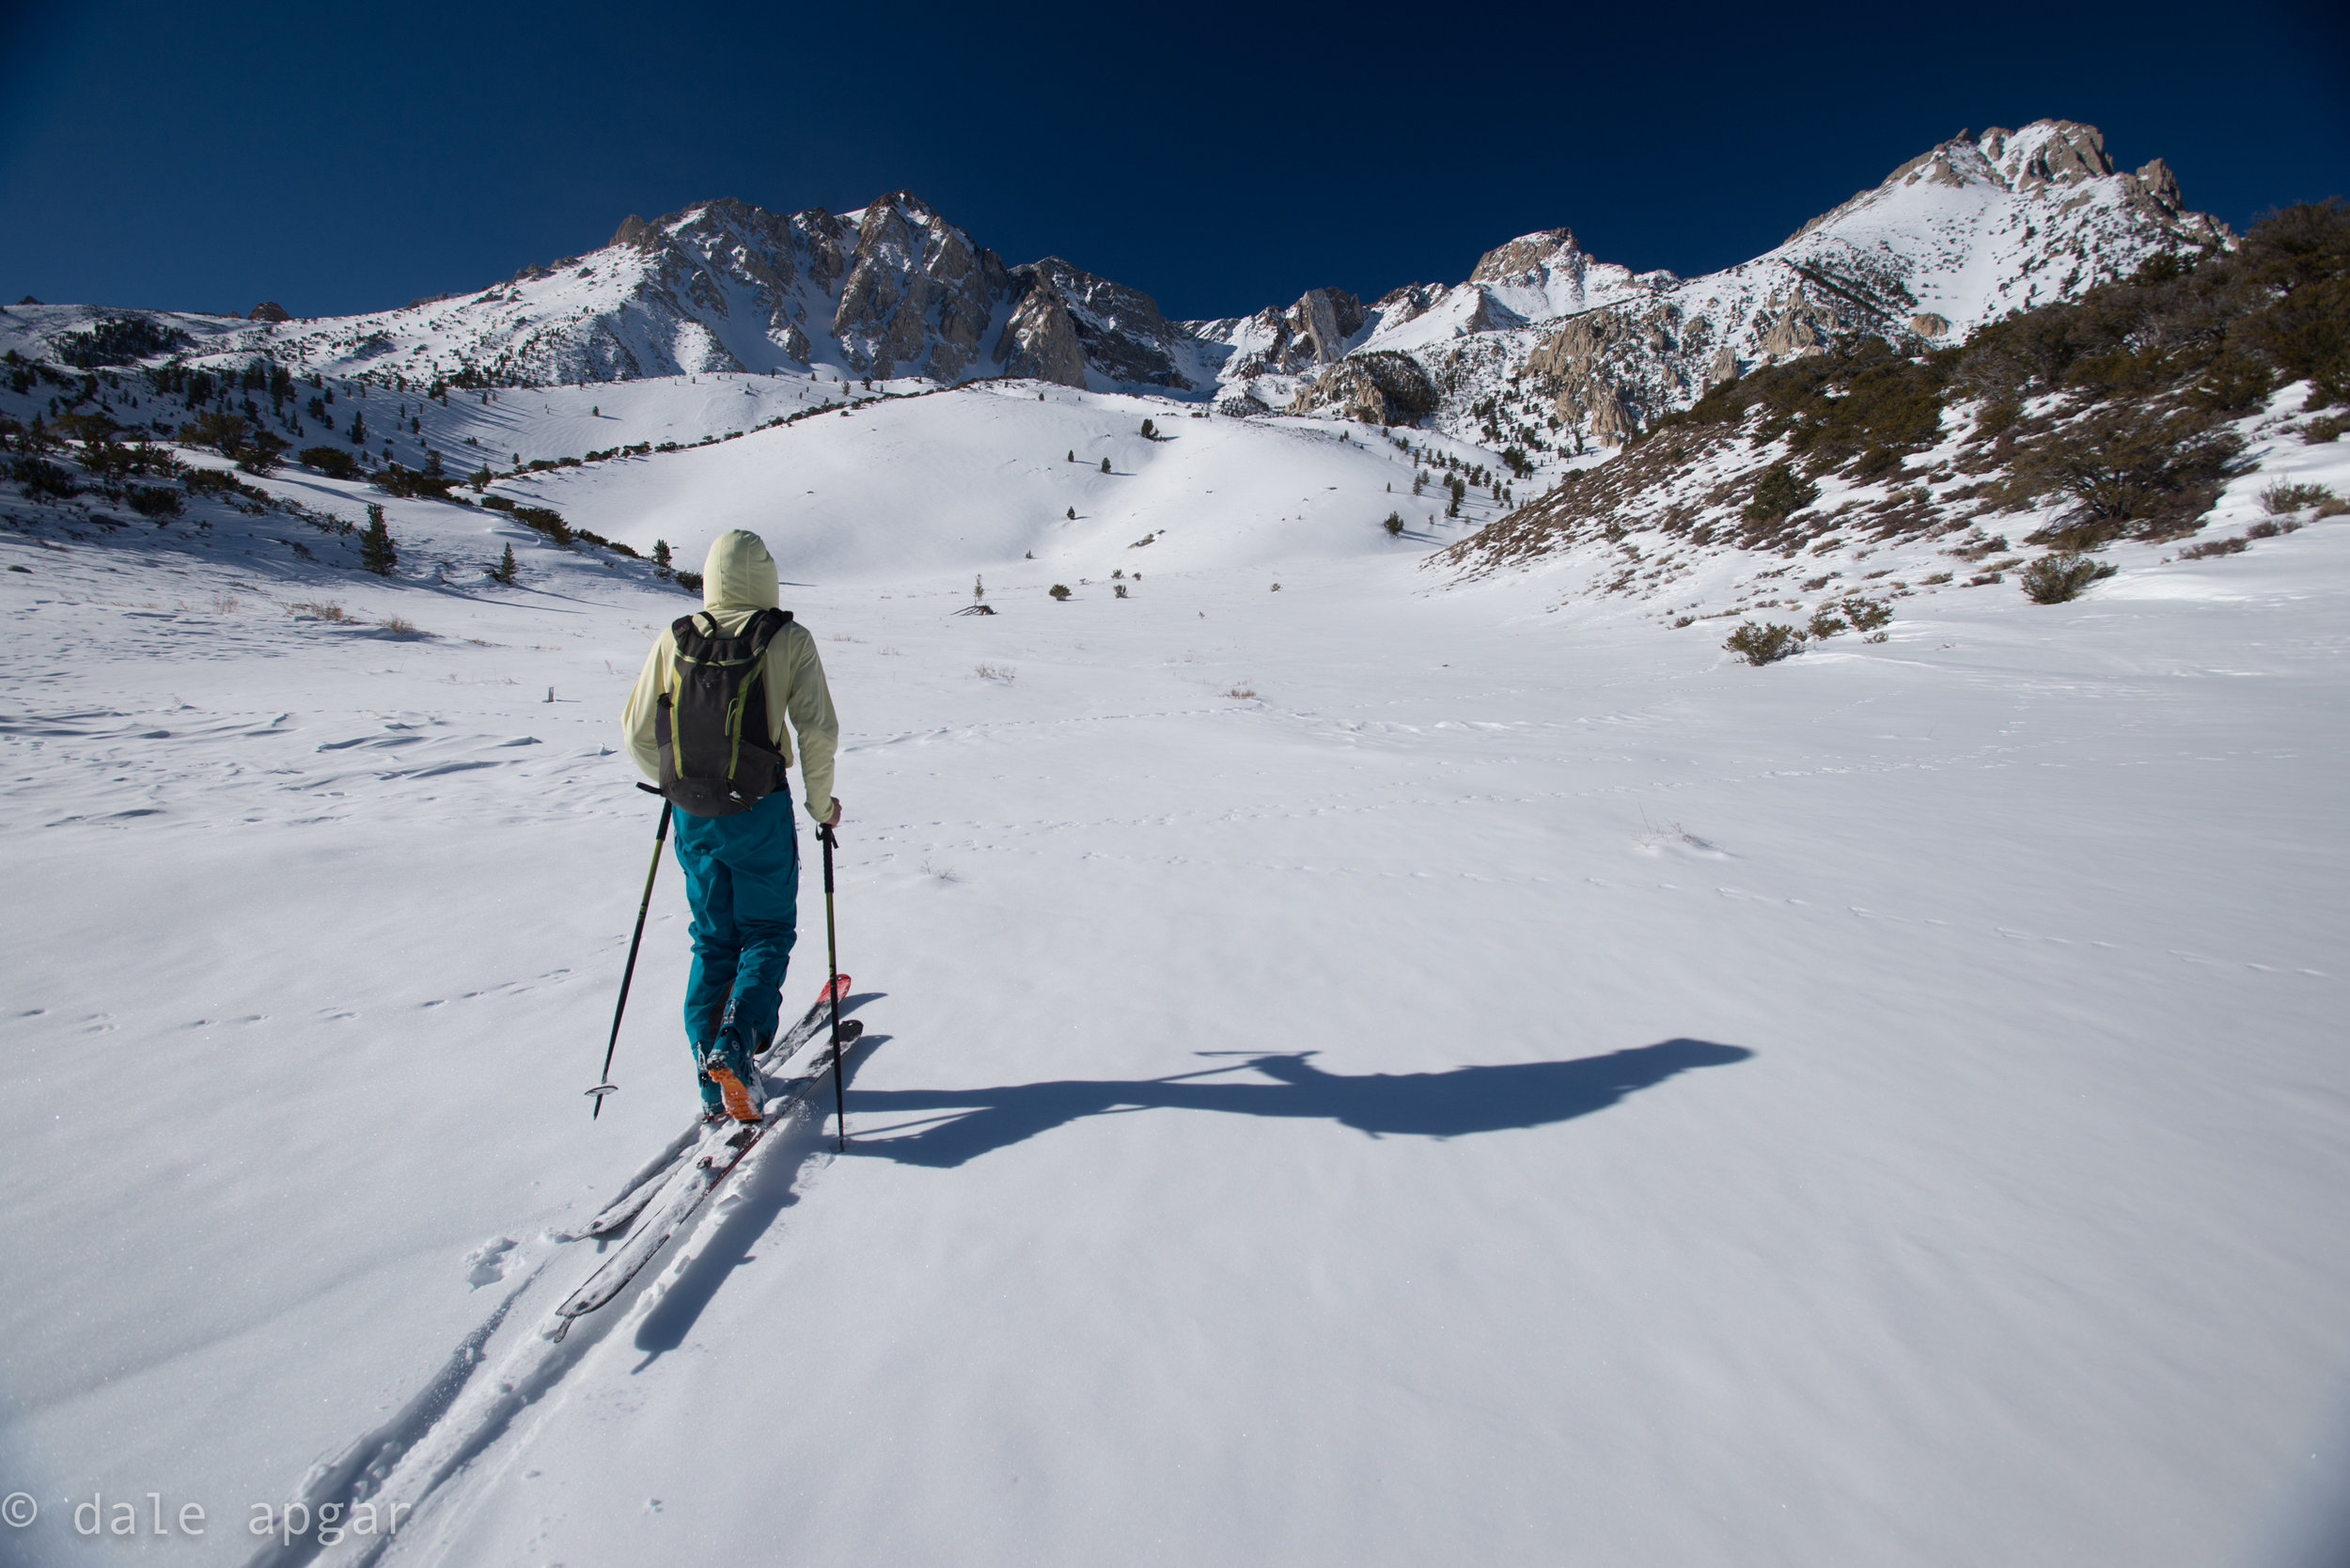 On the march back to Mt. Locke, chasing the Wahoo Gullies